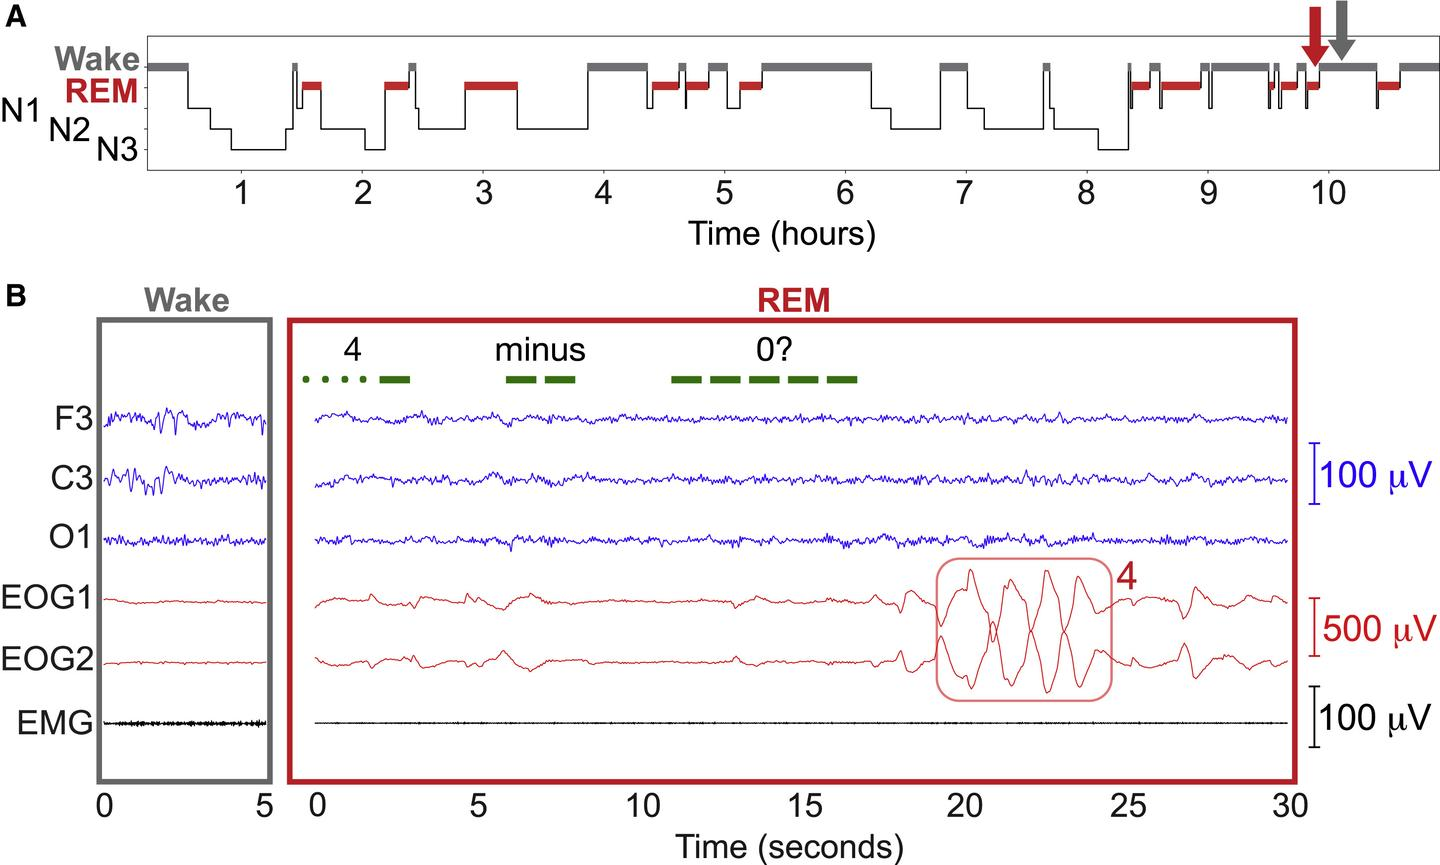 A german patient responds with eye movements to a math question in morse code during REM sleep